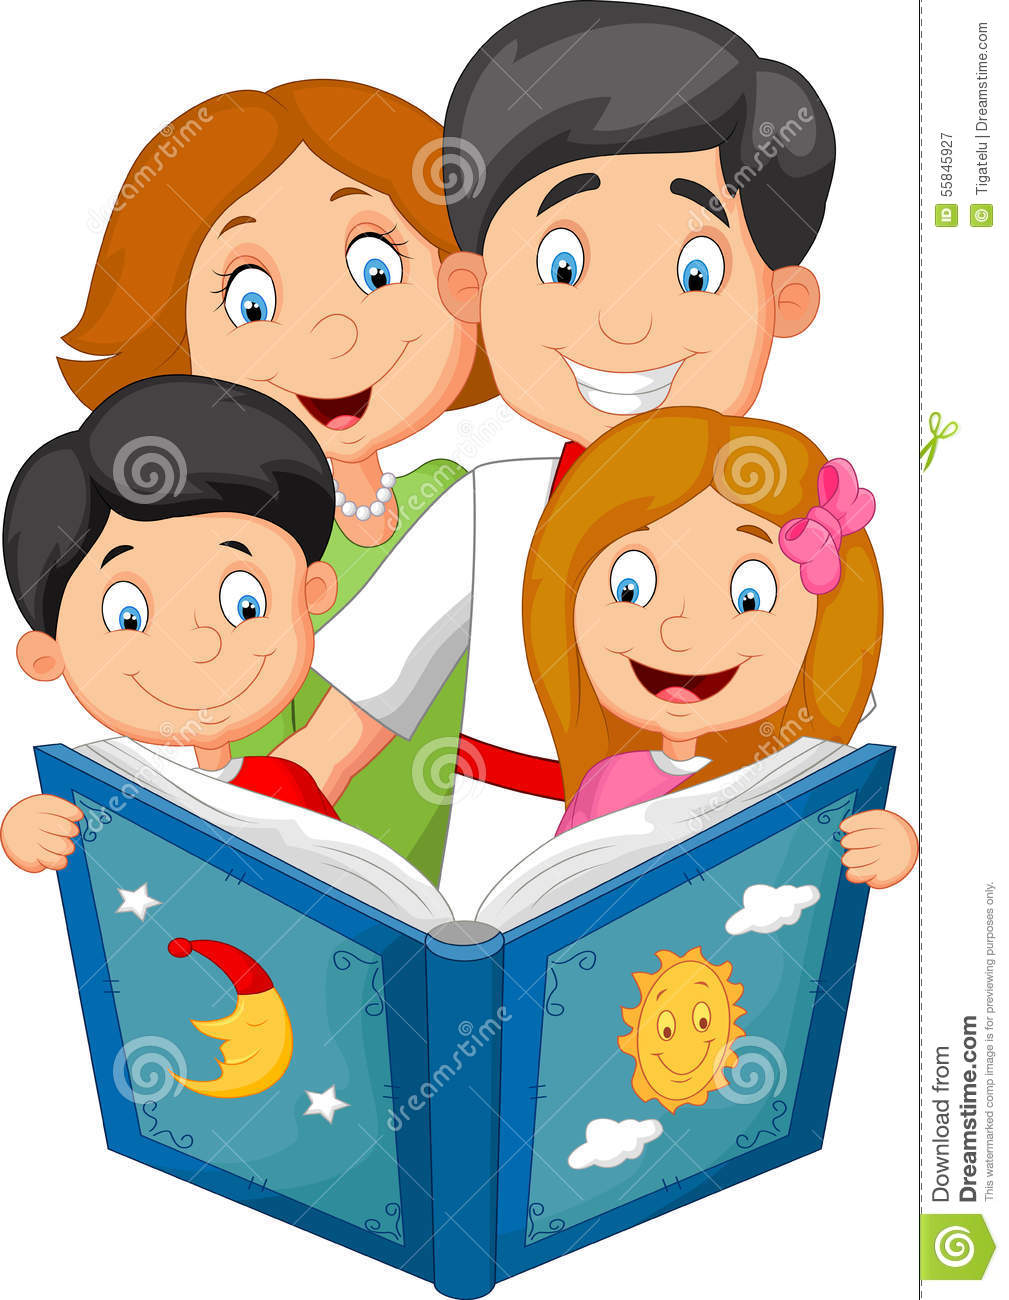 Worm clipart bedtime reading Bedtime Clipart Story Family clipart